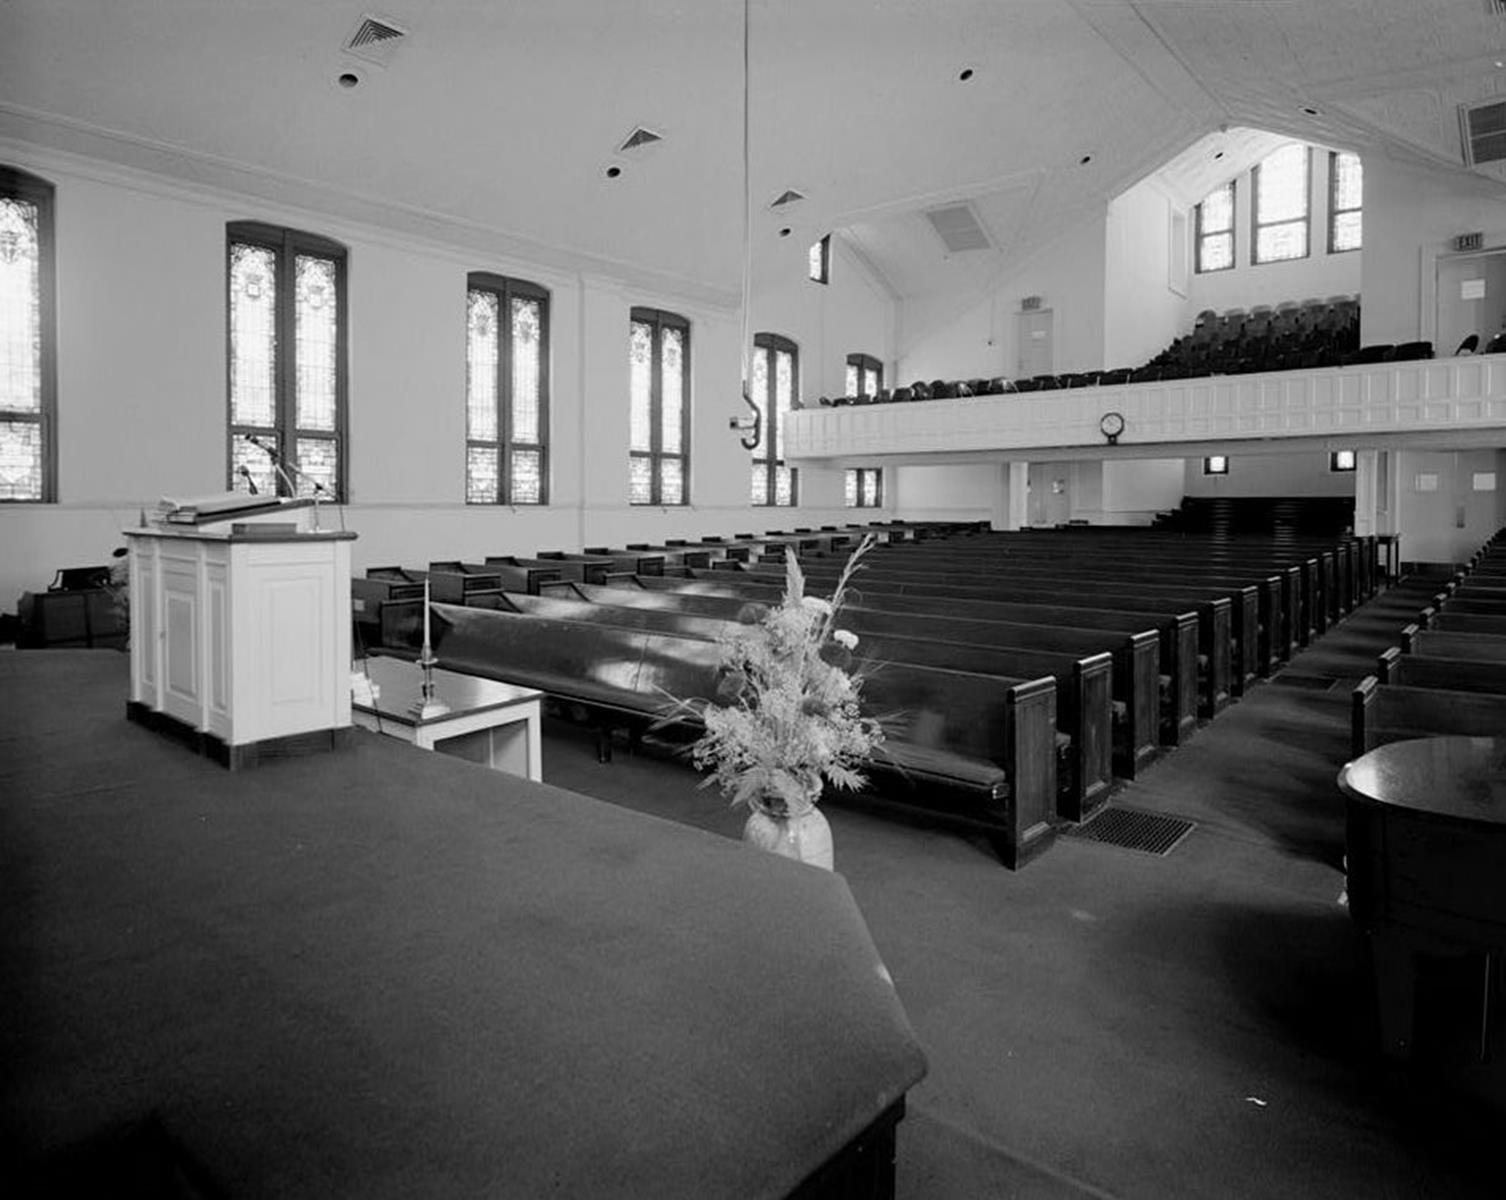 Ebenezer Baptist Church View From the Pulpit